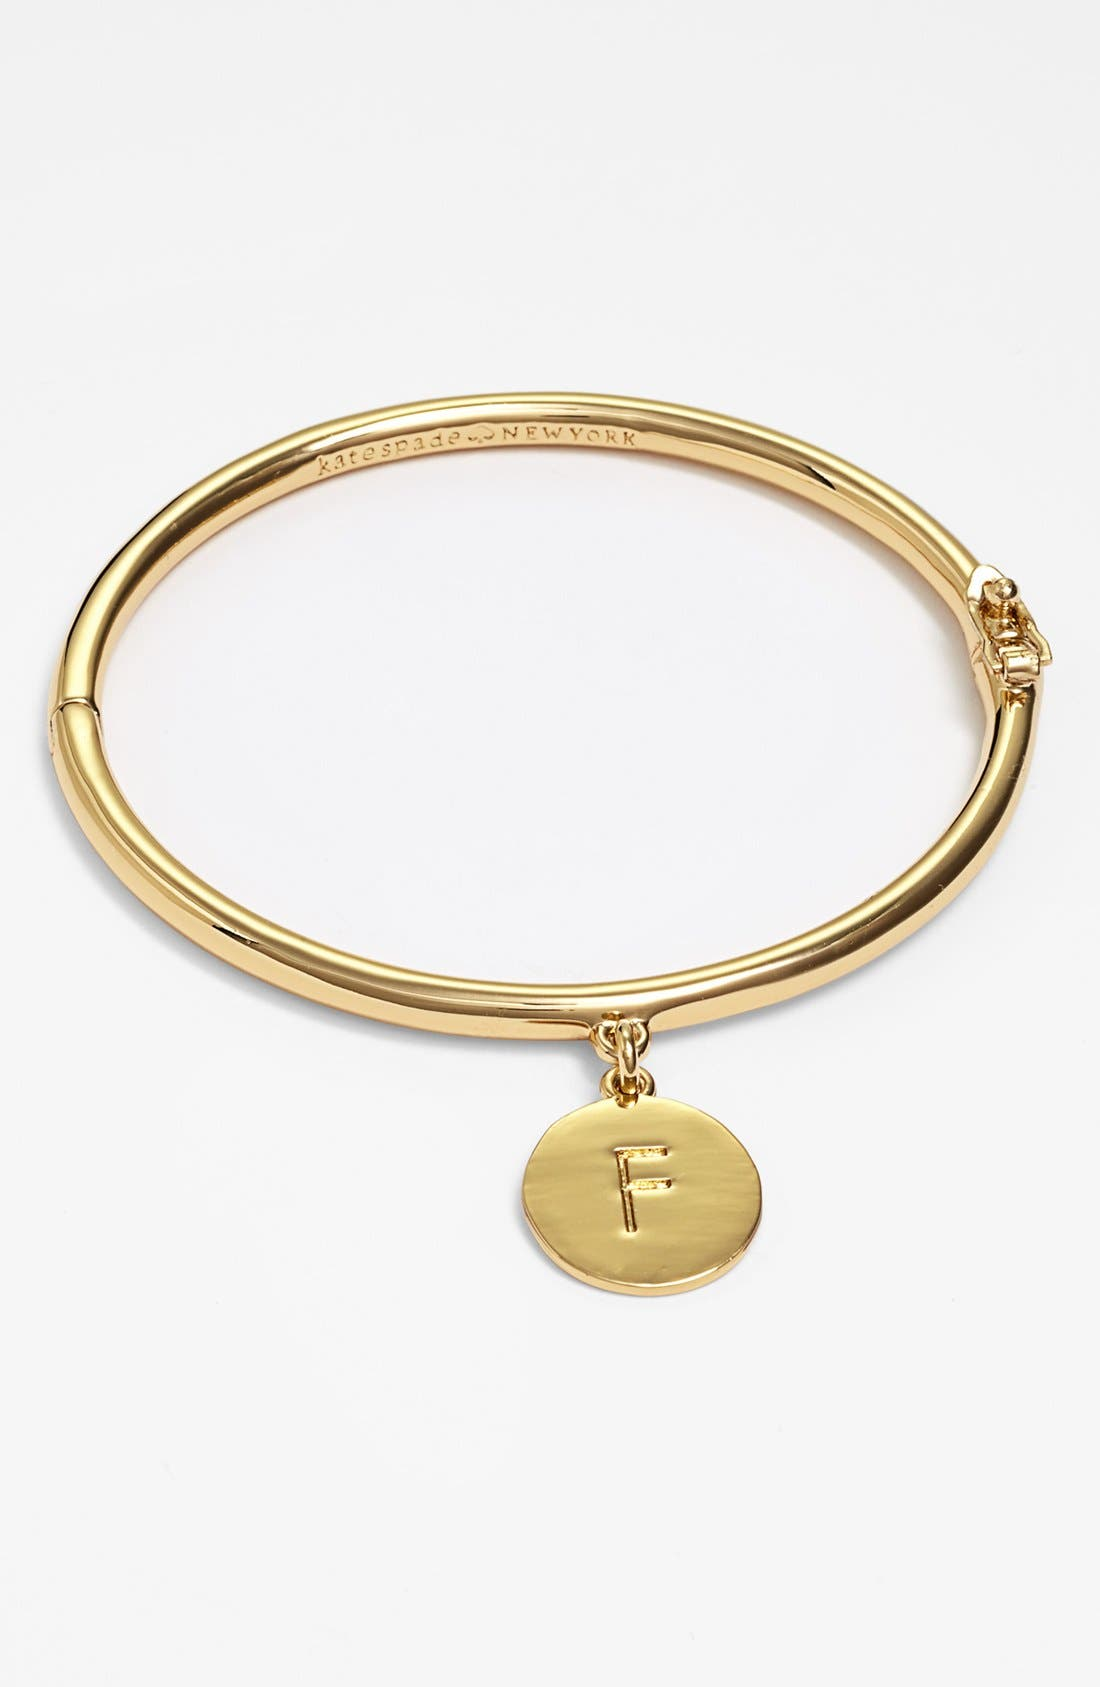 Main Image - kate spade new york 'one in a million' initial charm bracelet